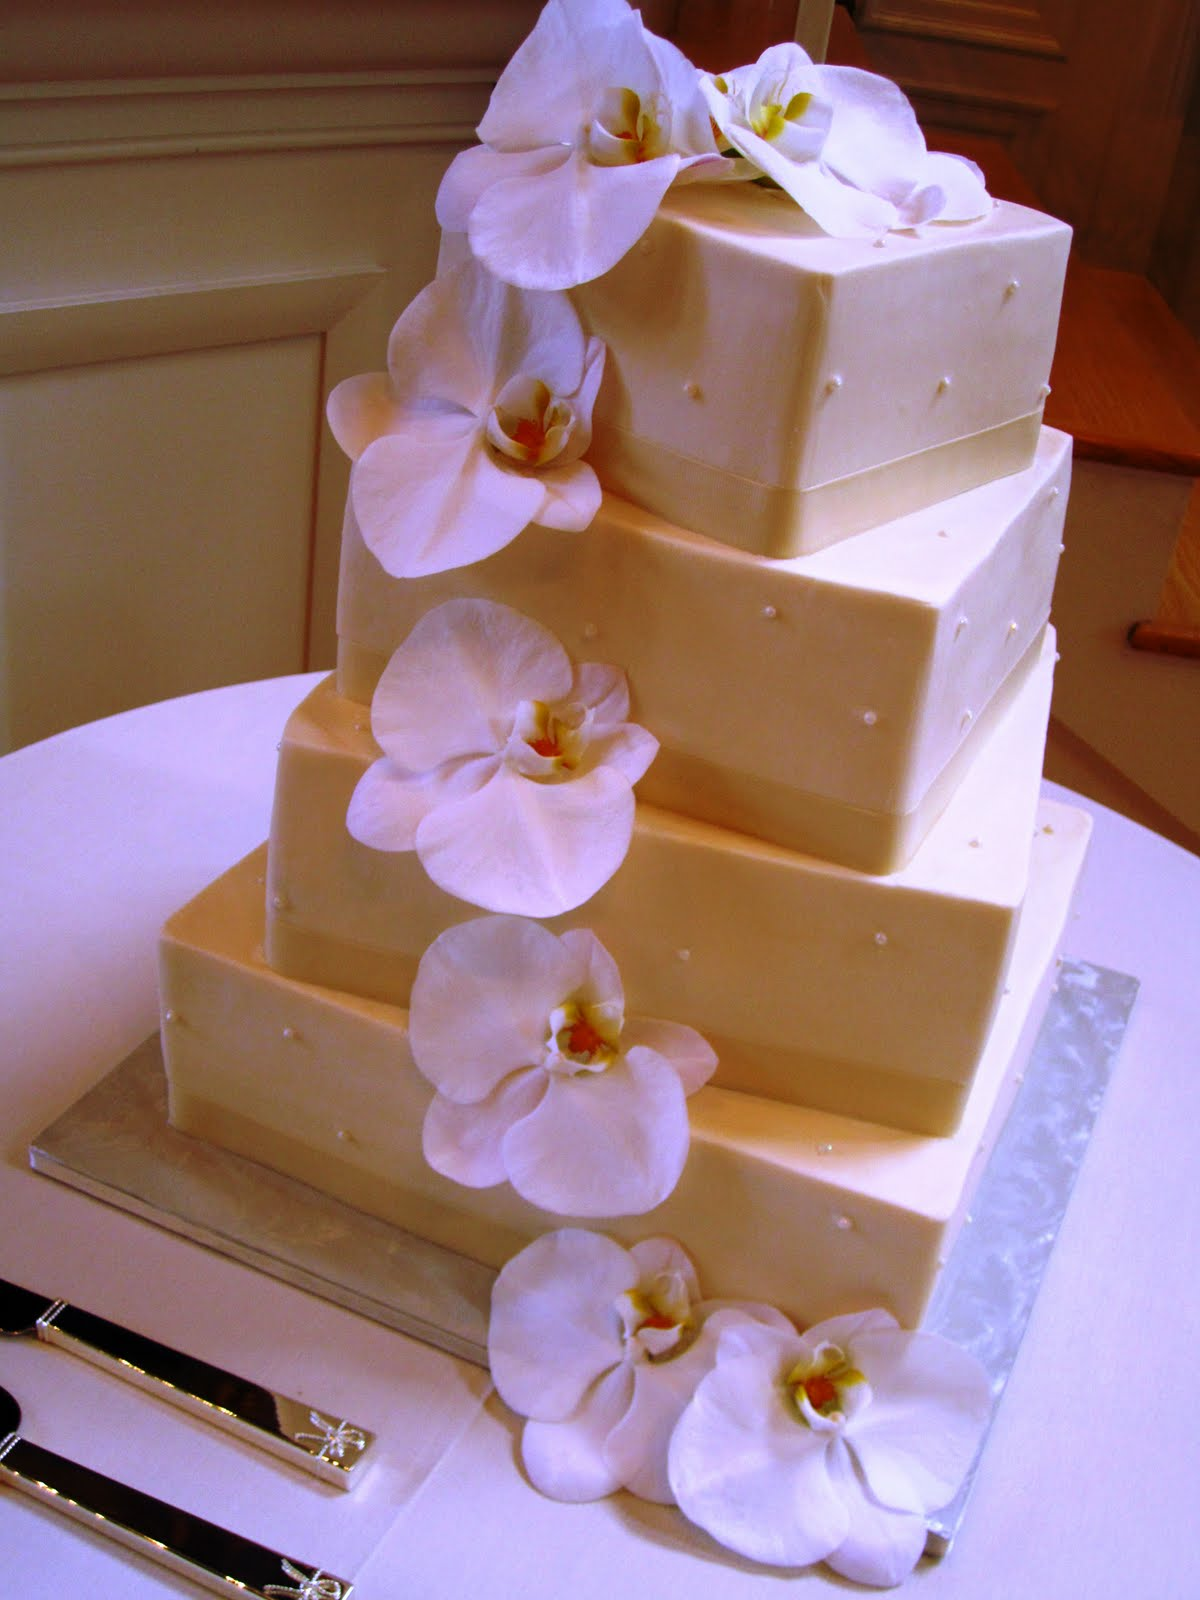 What A Cake Dianne Rockwell The Lady Out Of Lancaster Made This Very Elegant To Highlight Some Biggest Orchids I Have Ever